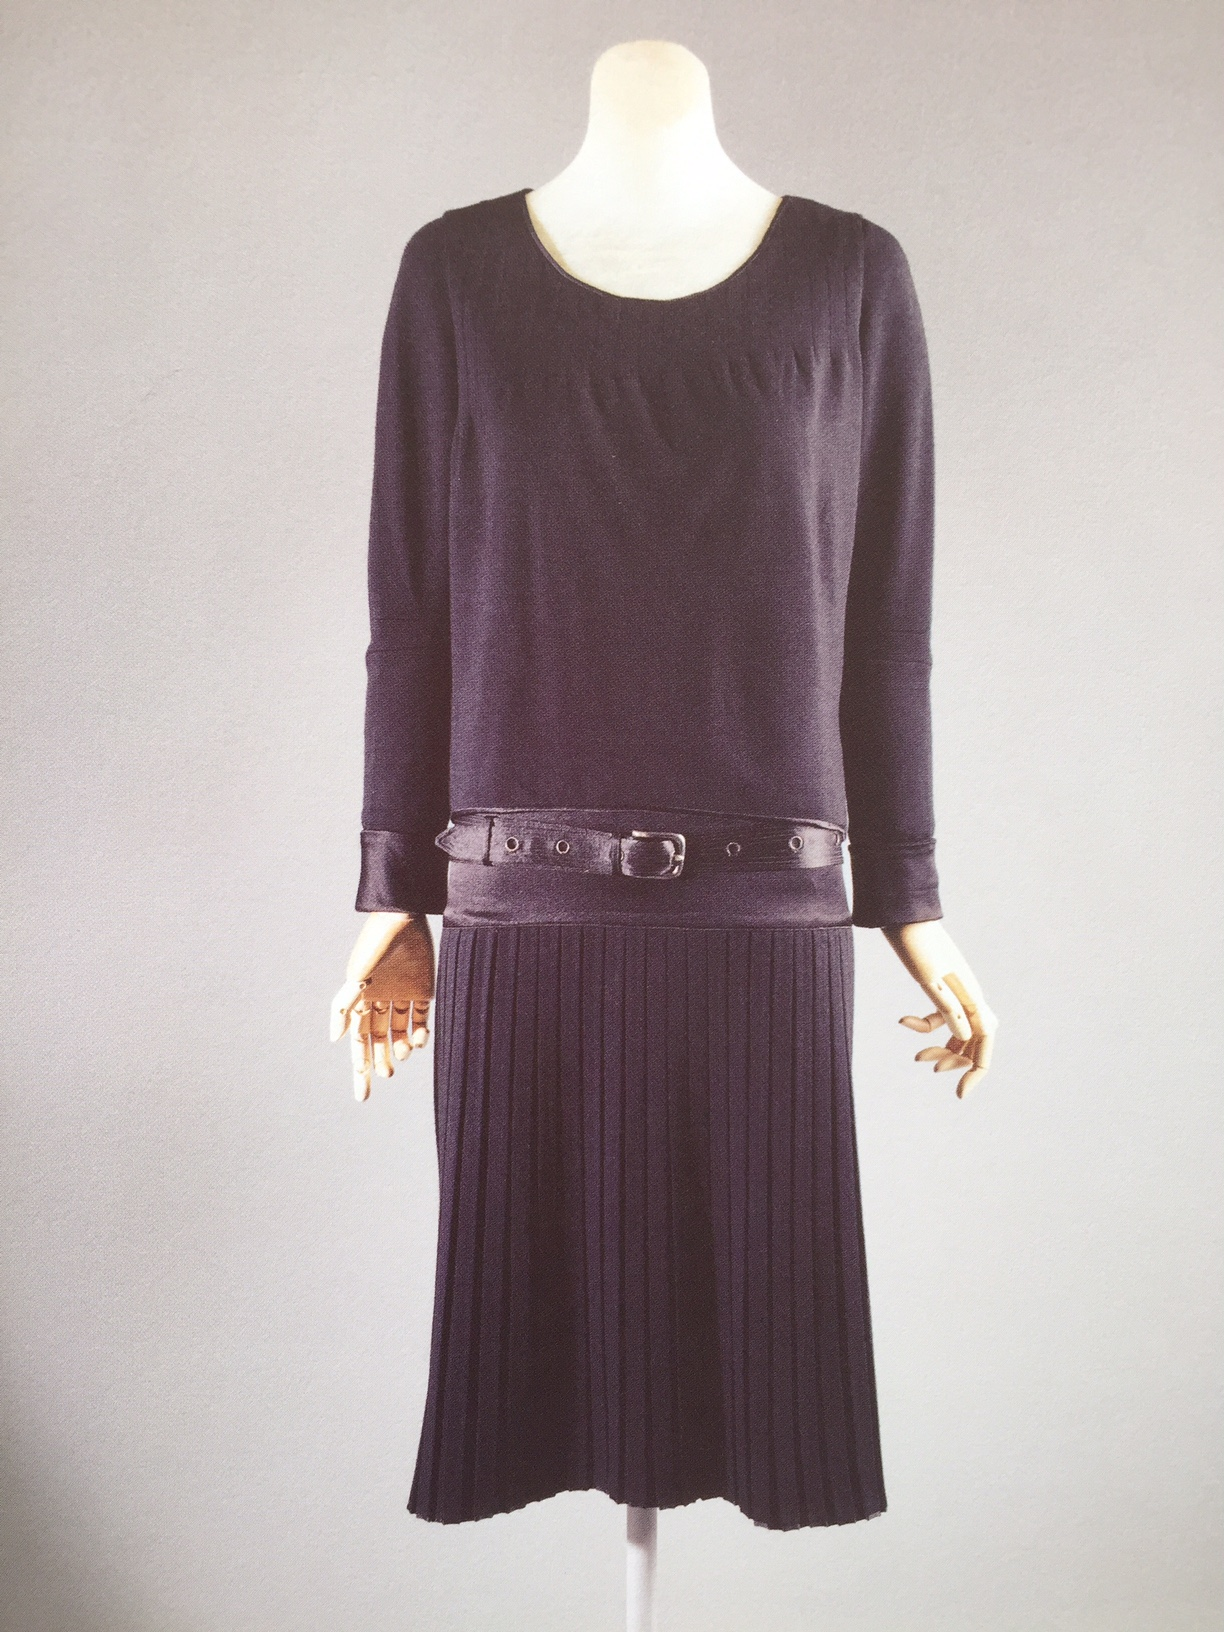 Coco Chanel, Dress in silk and wool, 1927